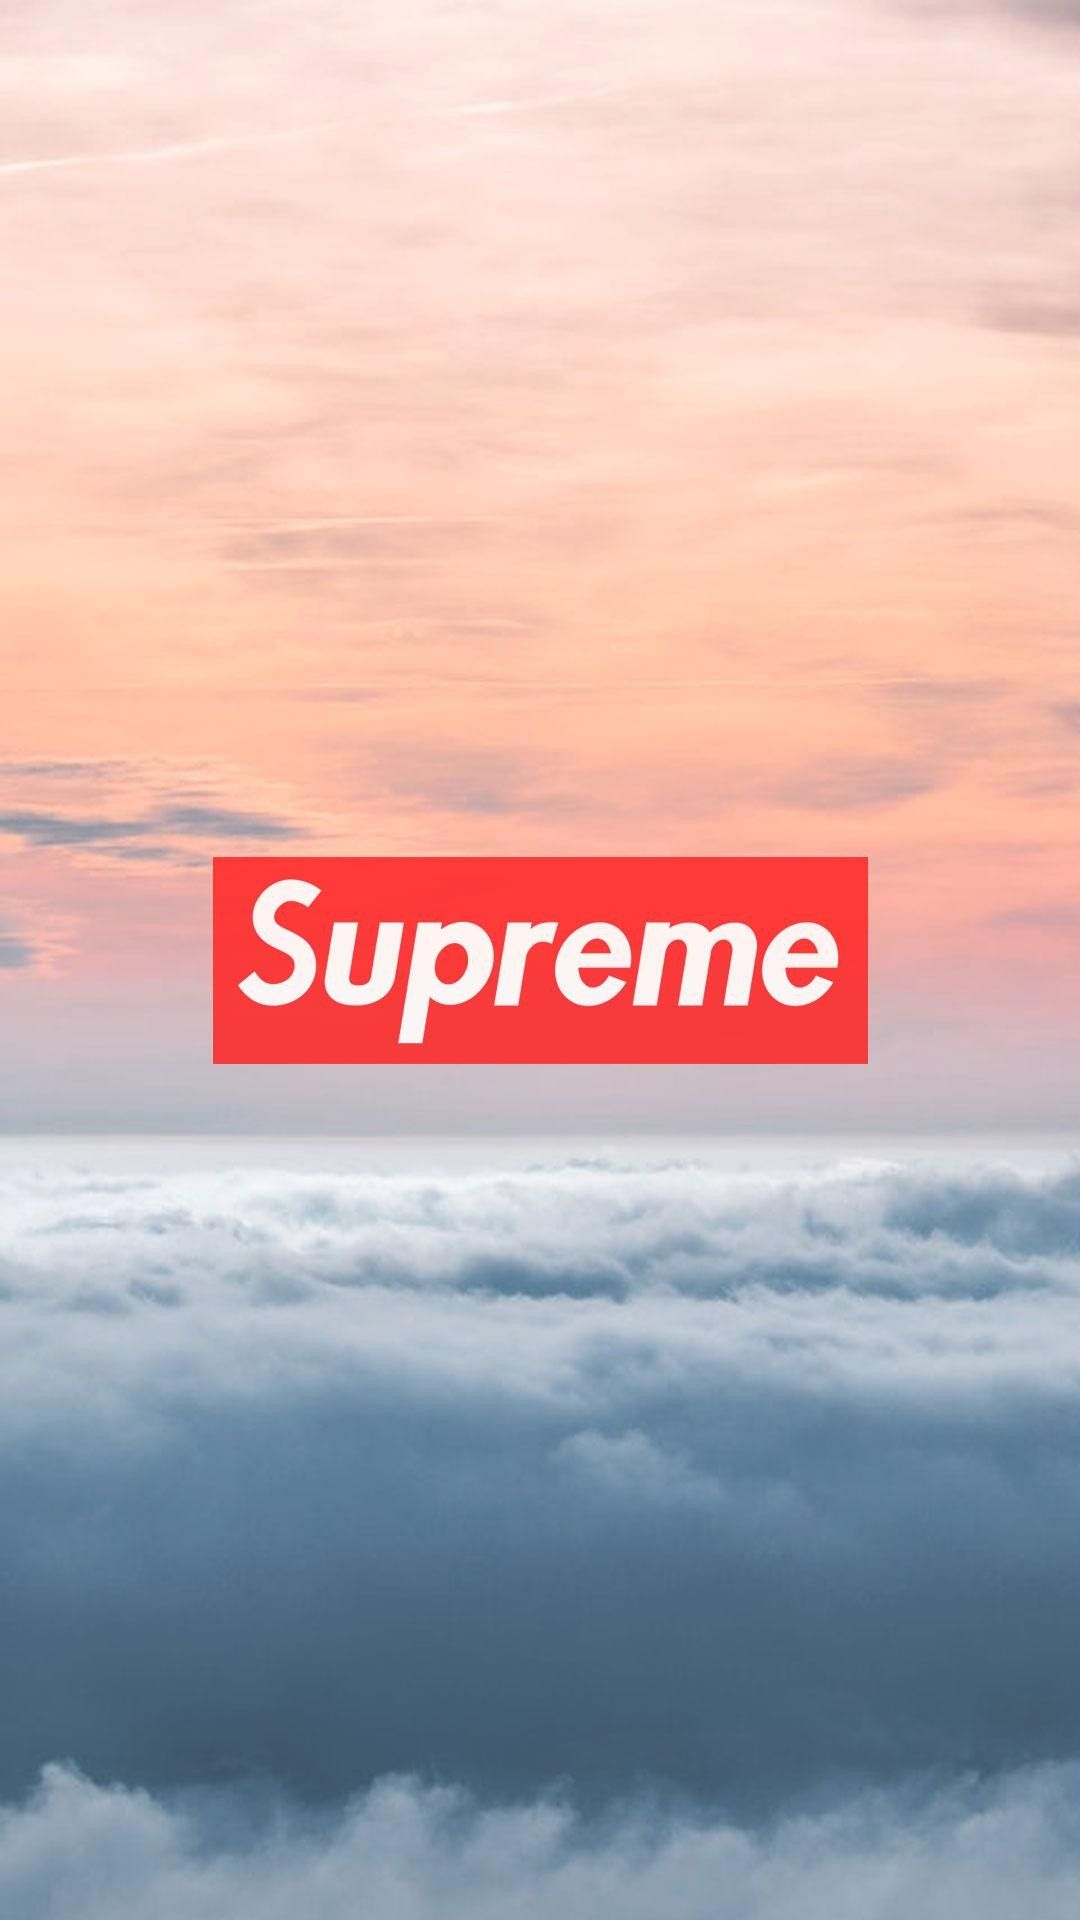 Follow The Board Hypebeast Wallpapers By Nixxboi For More Supreme Wallpaper Hypebeast Wallpaper Supreme Hypebeast